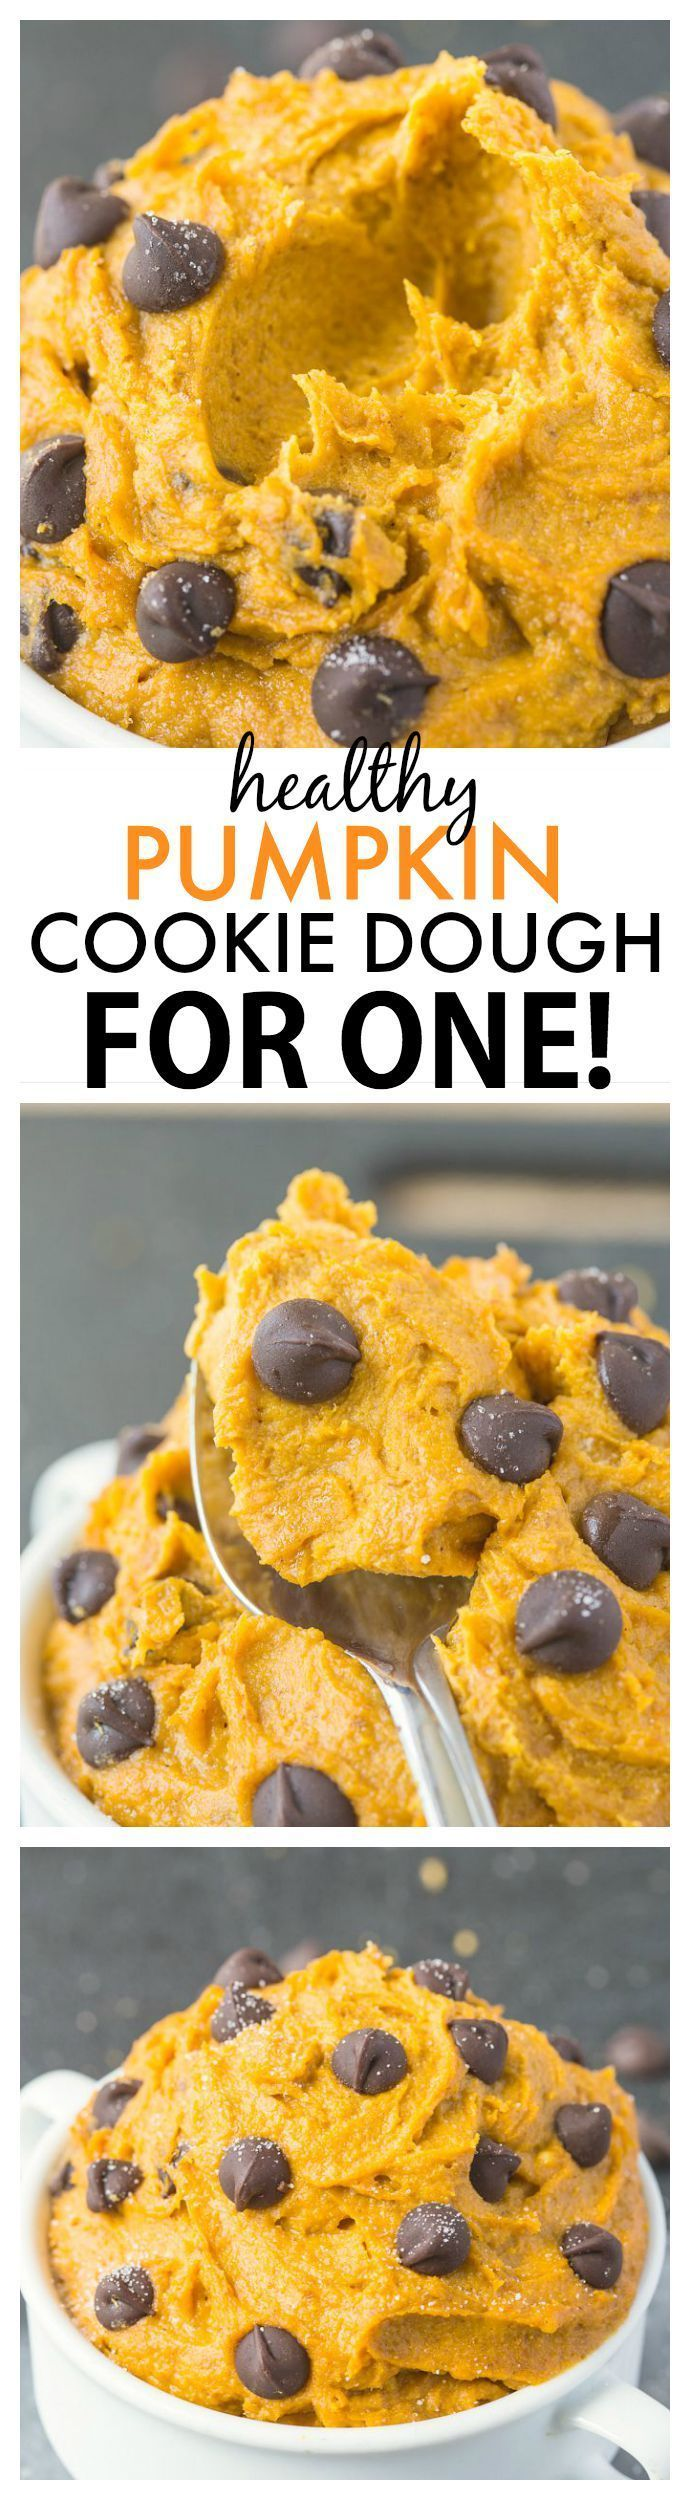 Healthy Pumpkin Cookie Dough for ONE- You'd never believe this creamy ...